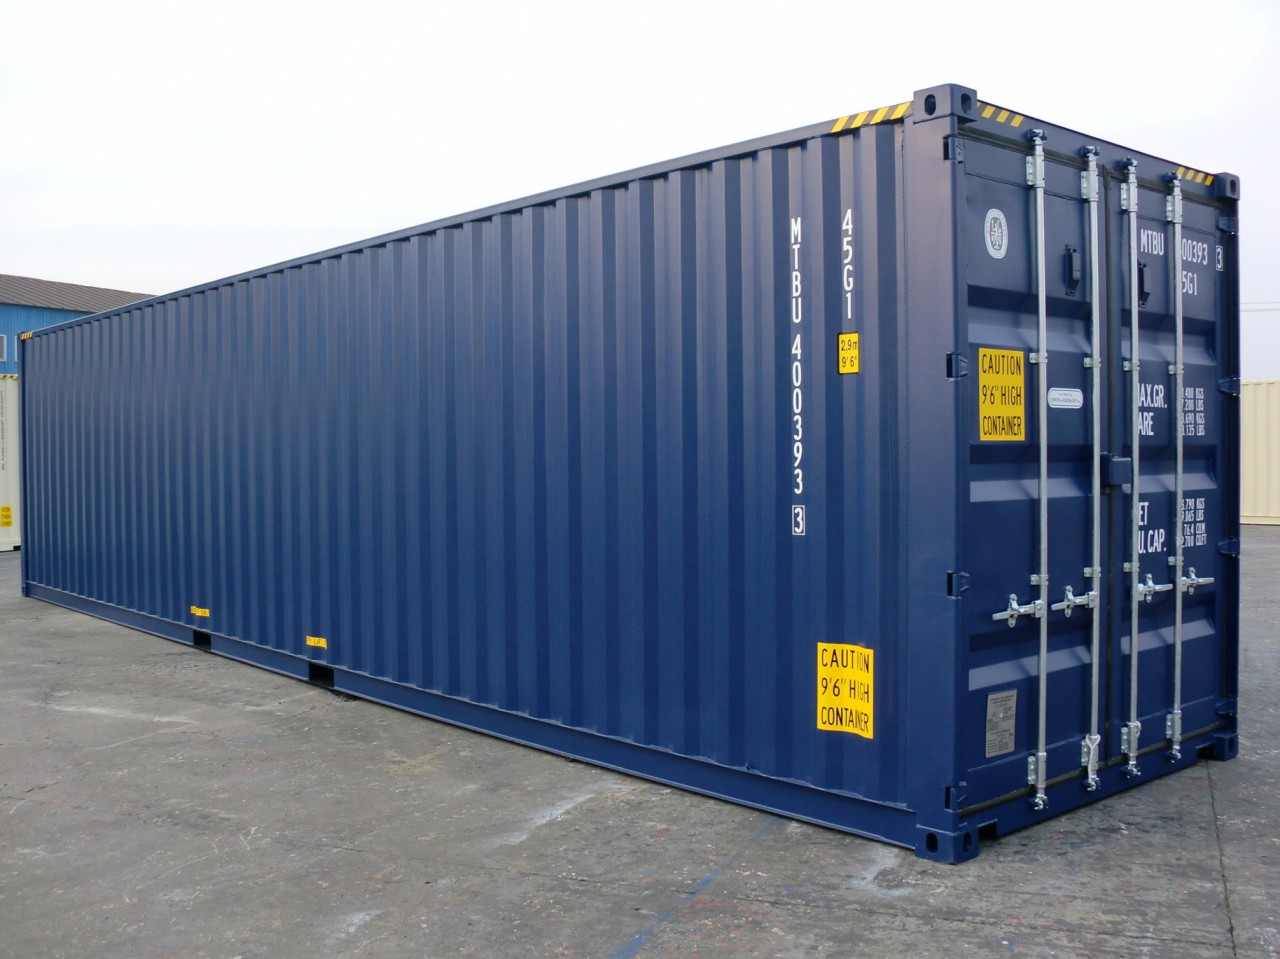 Ny 40ft extra hög container